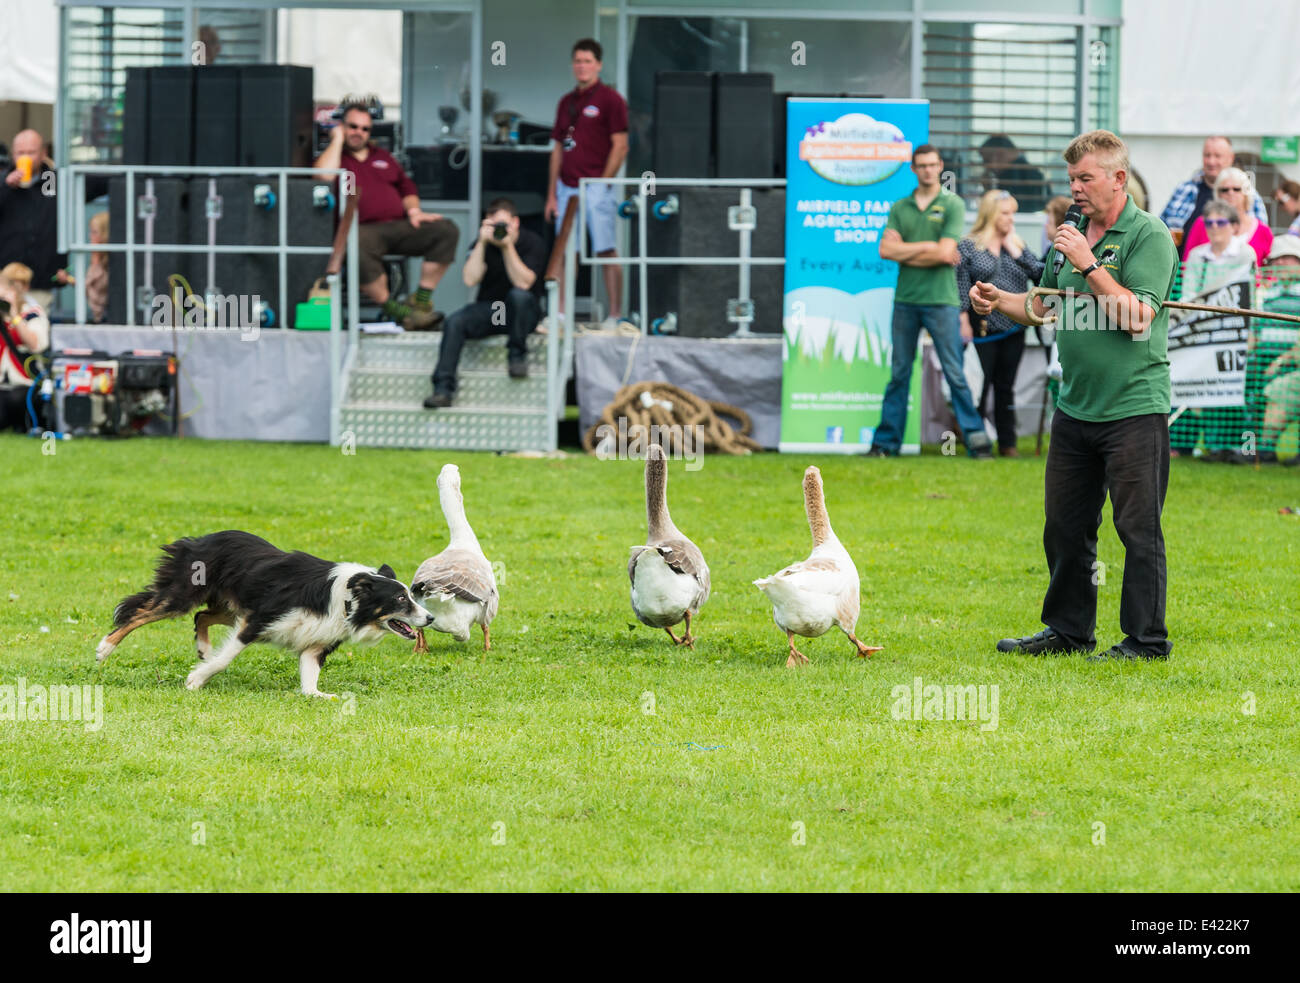 Sheep dog trainer performing at the Mirfield show - Stock Image